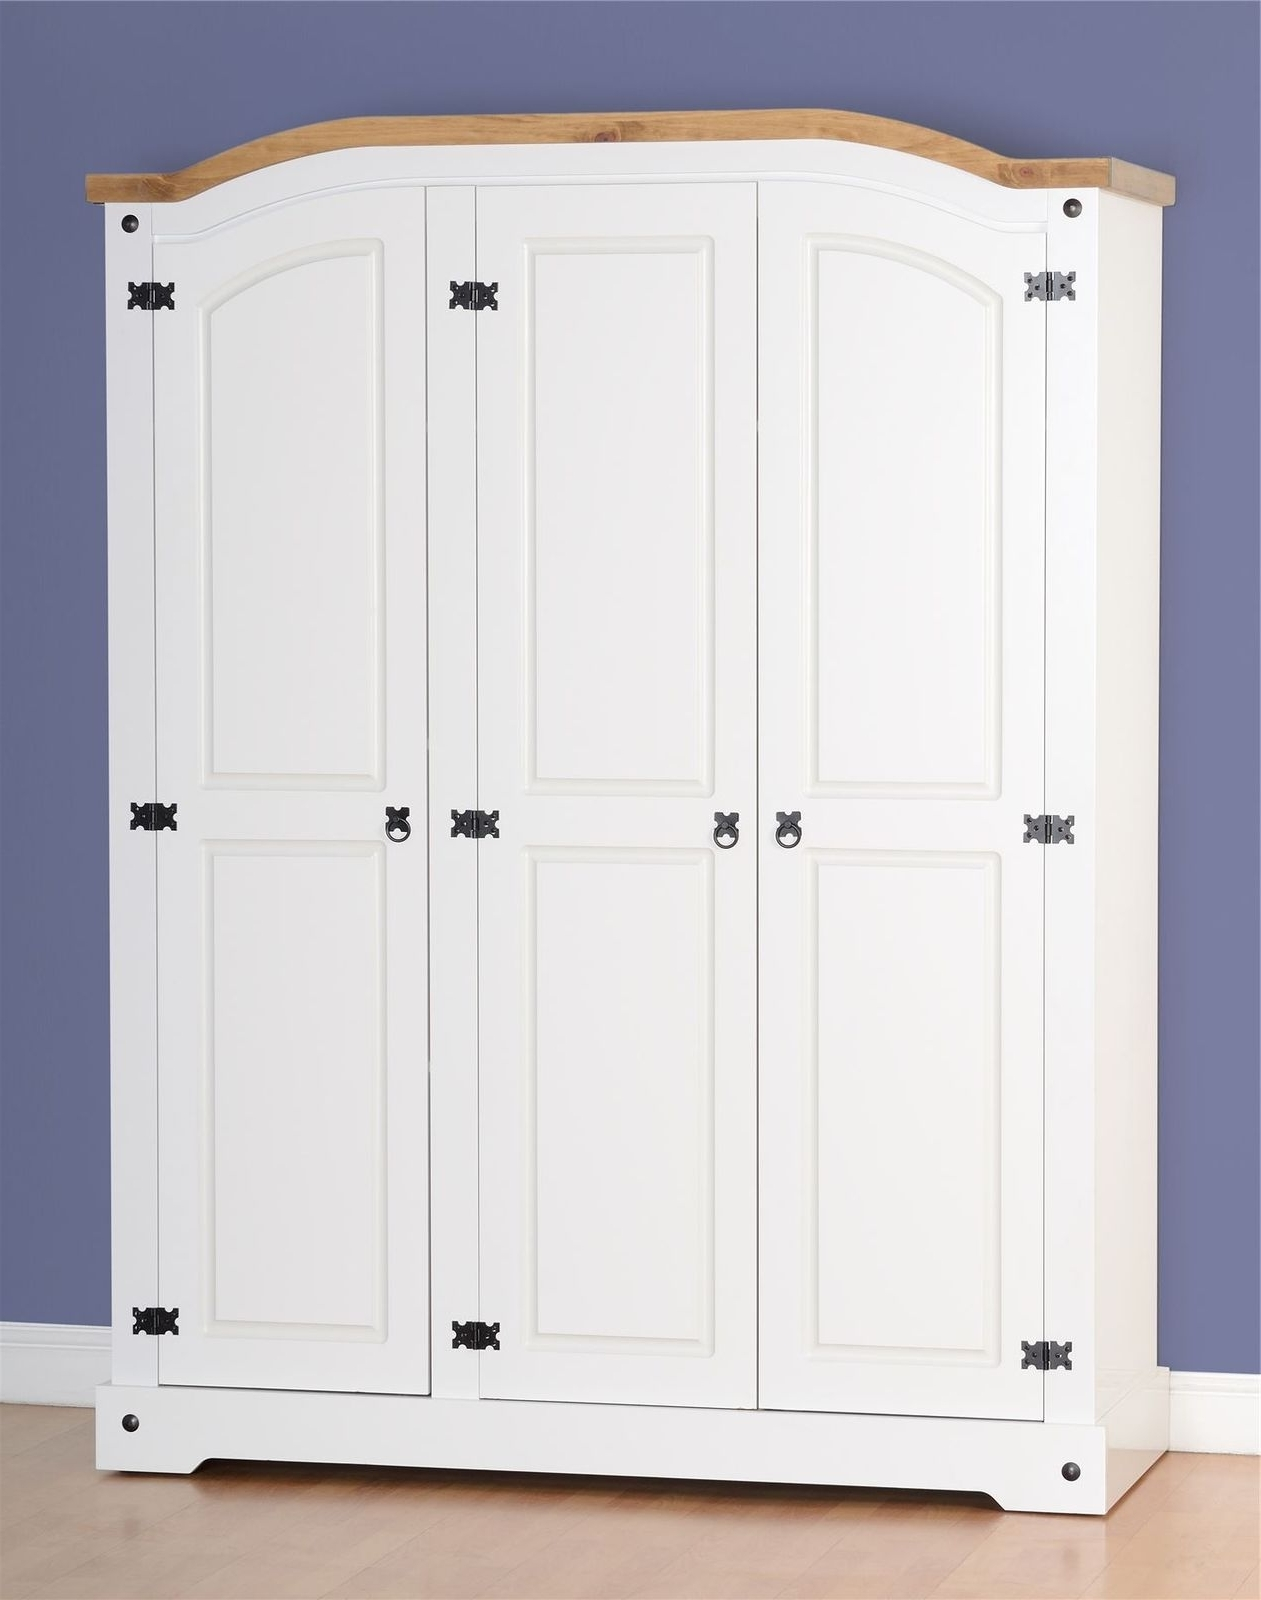 White Three Door Wardrobes Throughout Well Liked Corona 3 Door Wardrobe – White Distressed Waxed Pine (View 6 of 15)